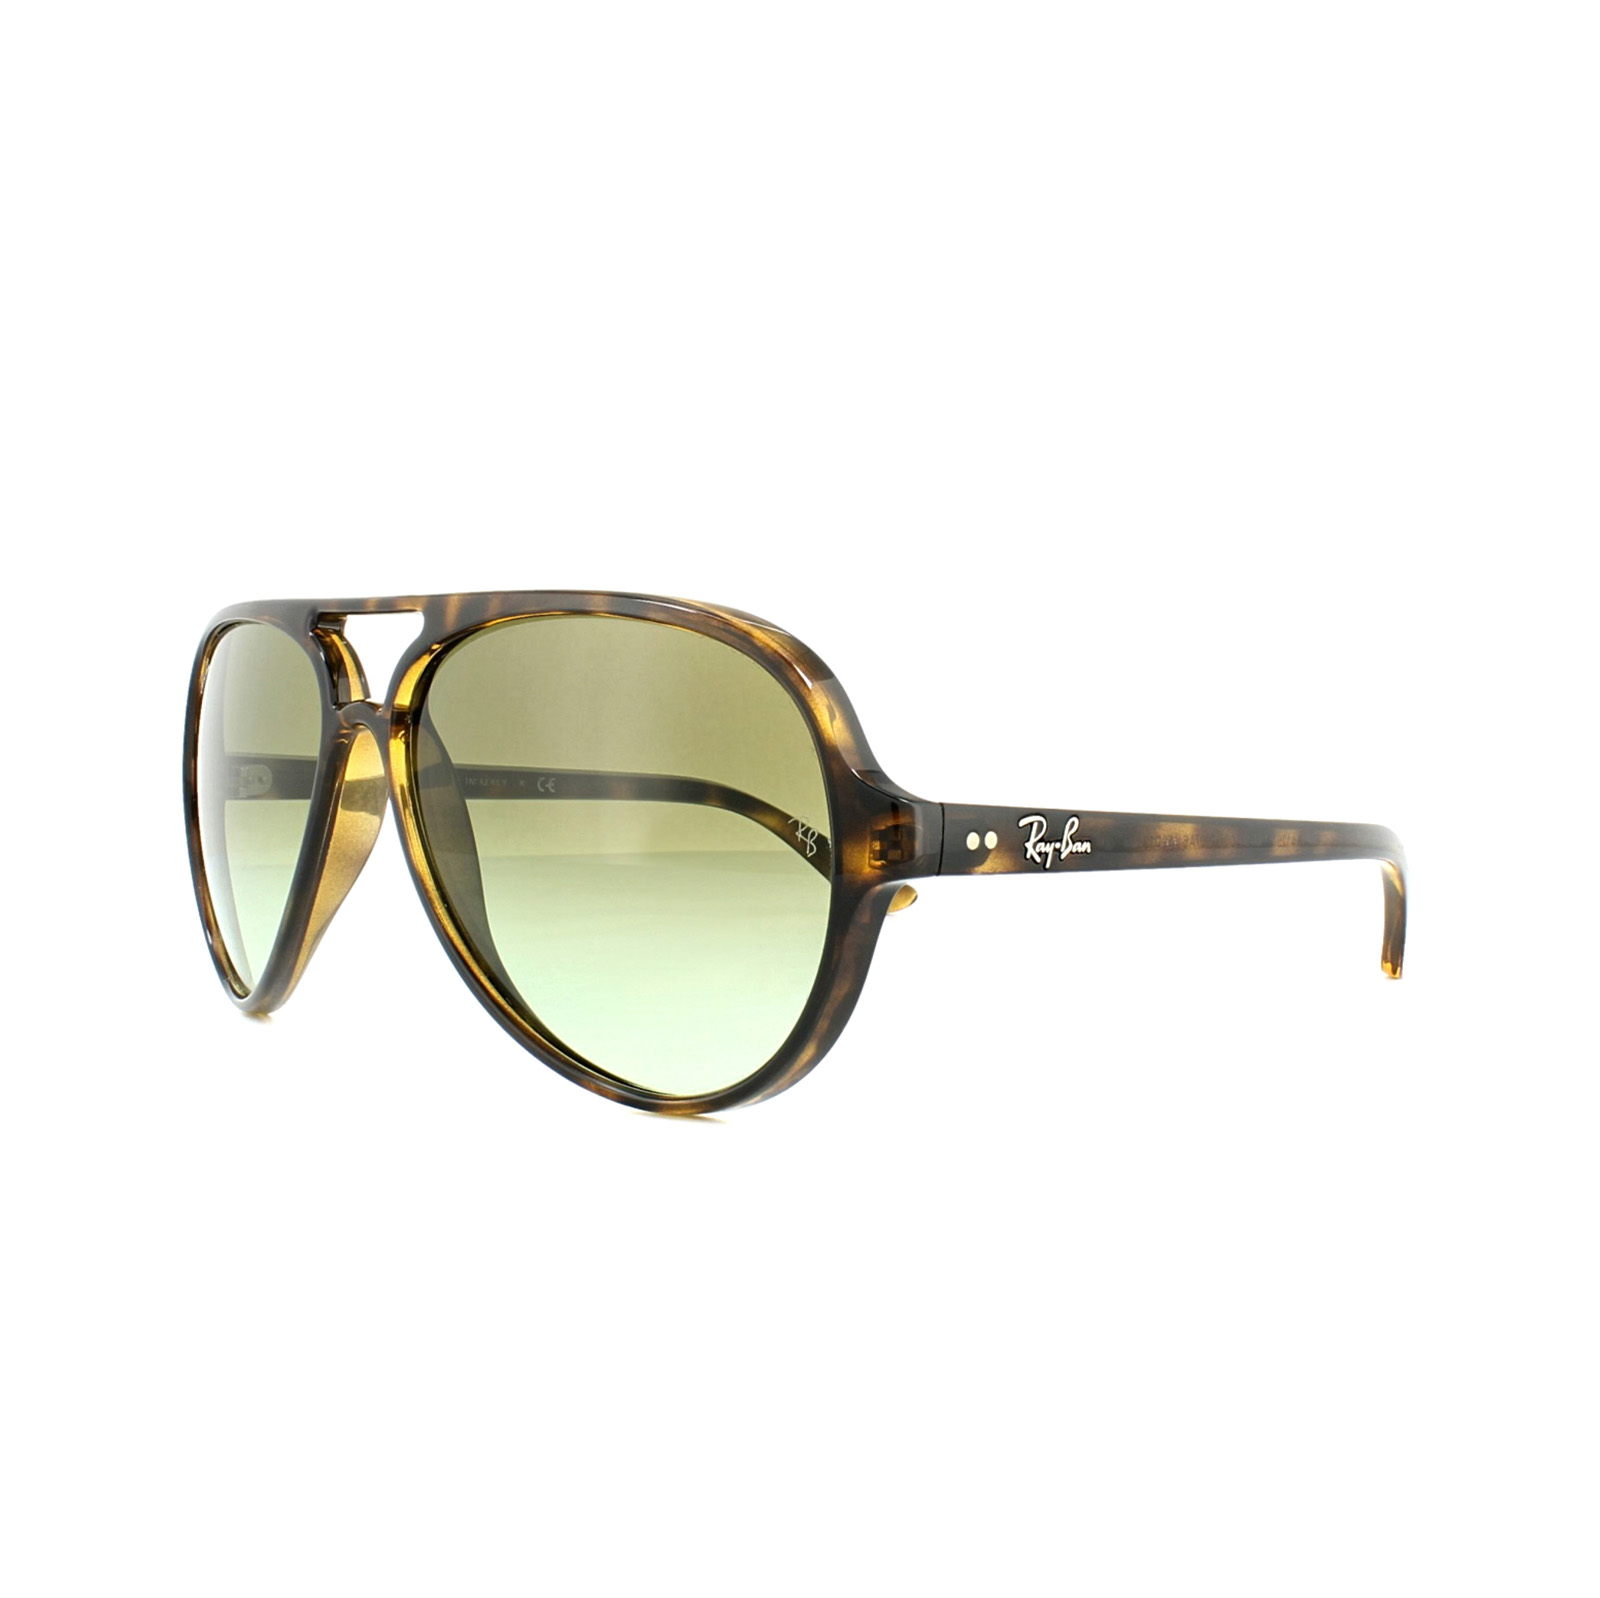 b989fa680e2765 Sentinel Ray-Ban Sunglasses Cats 5000 4125 710 A6 Tortoise Green Gradient